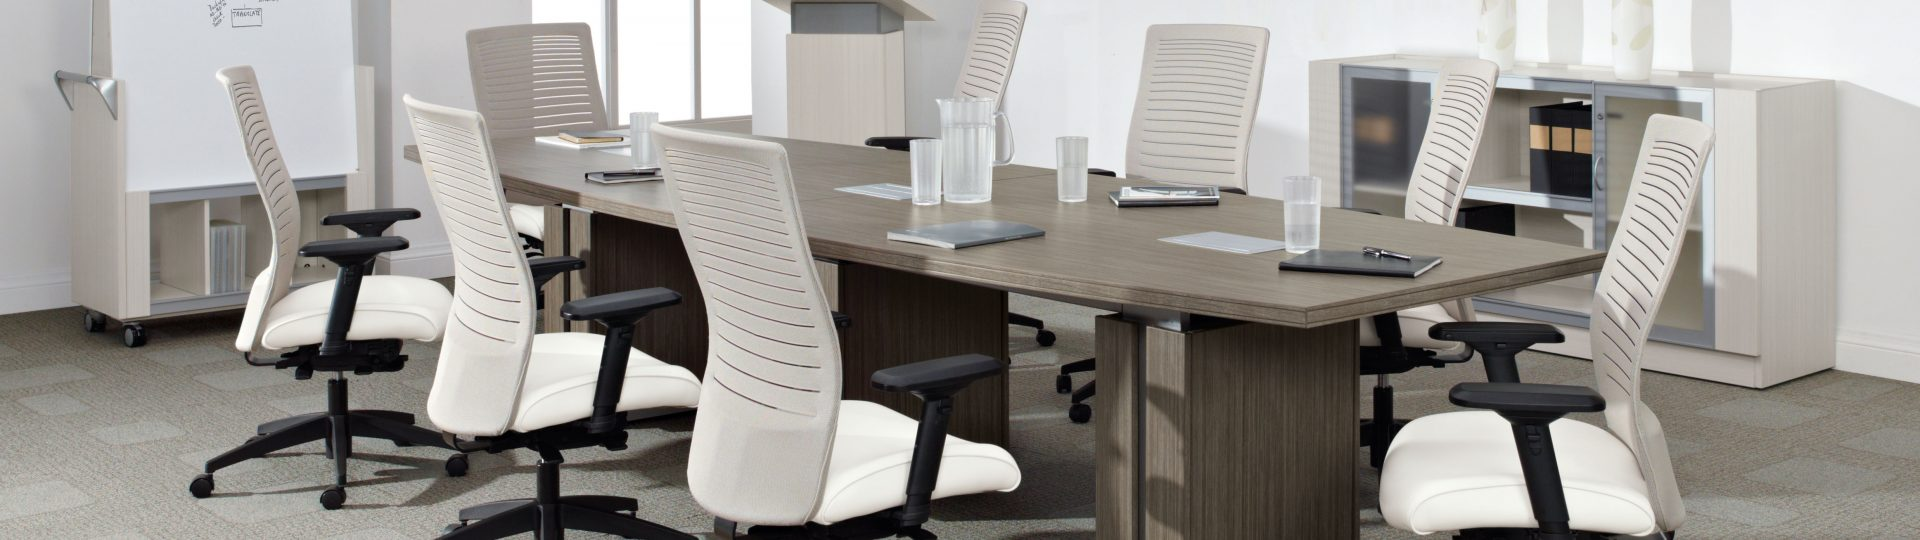 Global Accord Conference chairs and Zira Conference Table